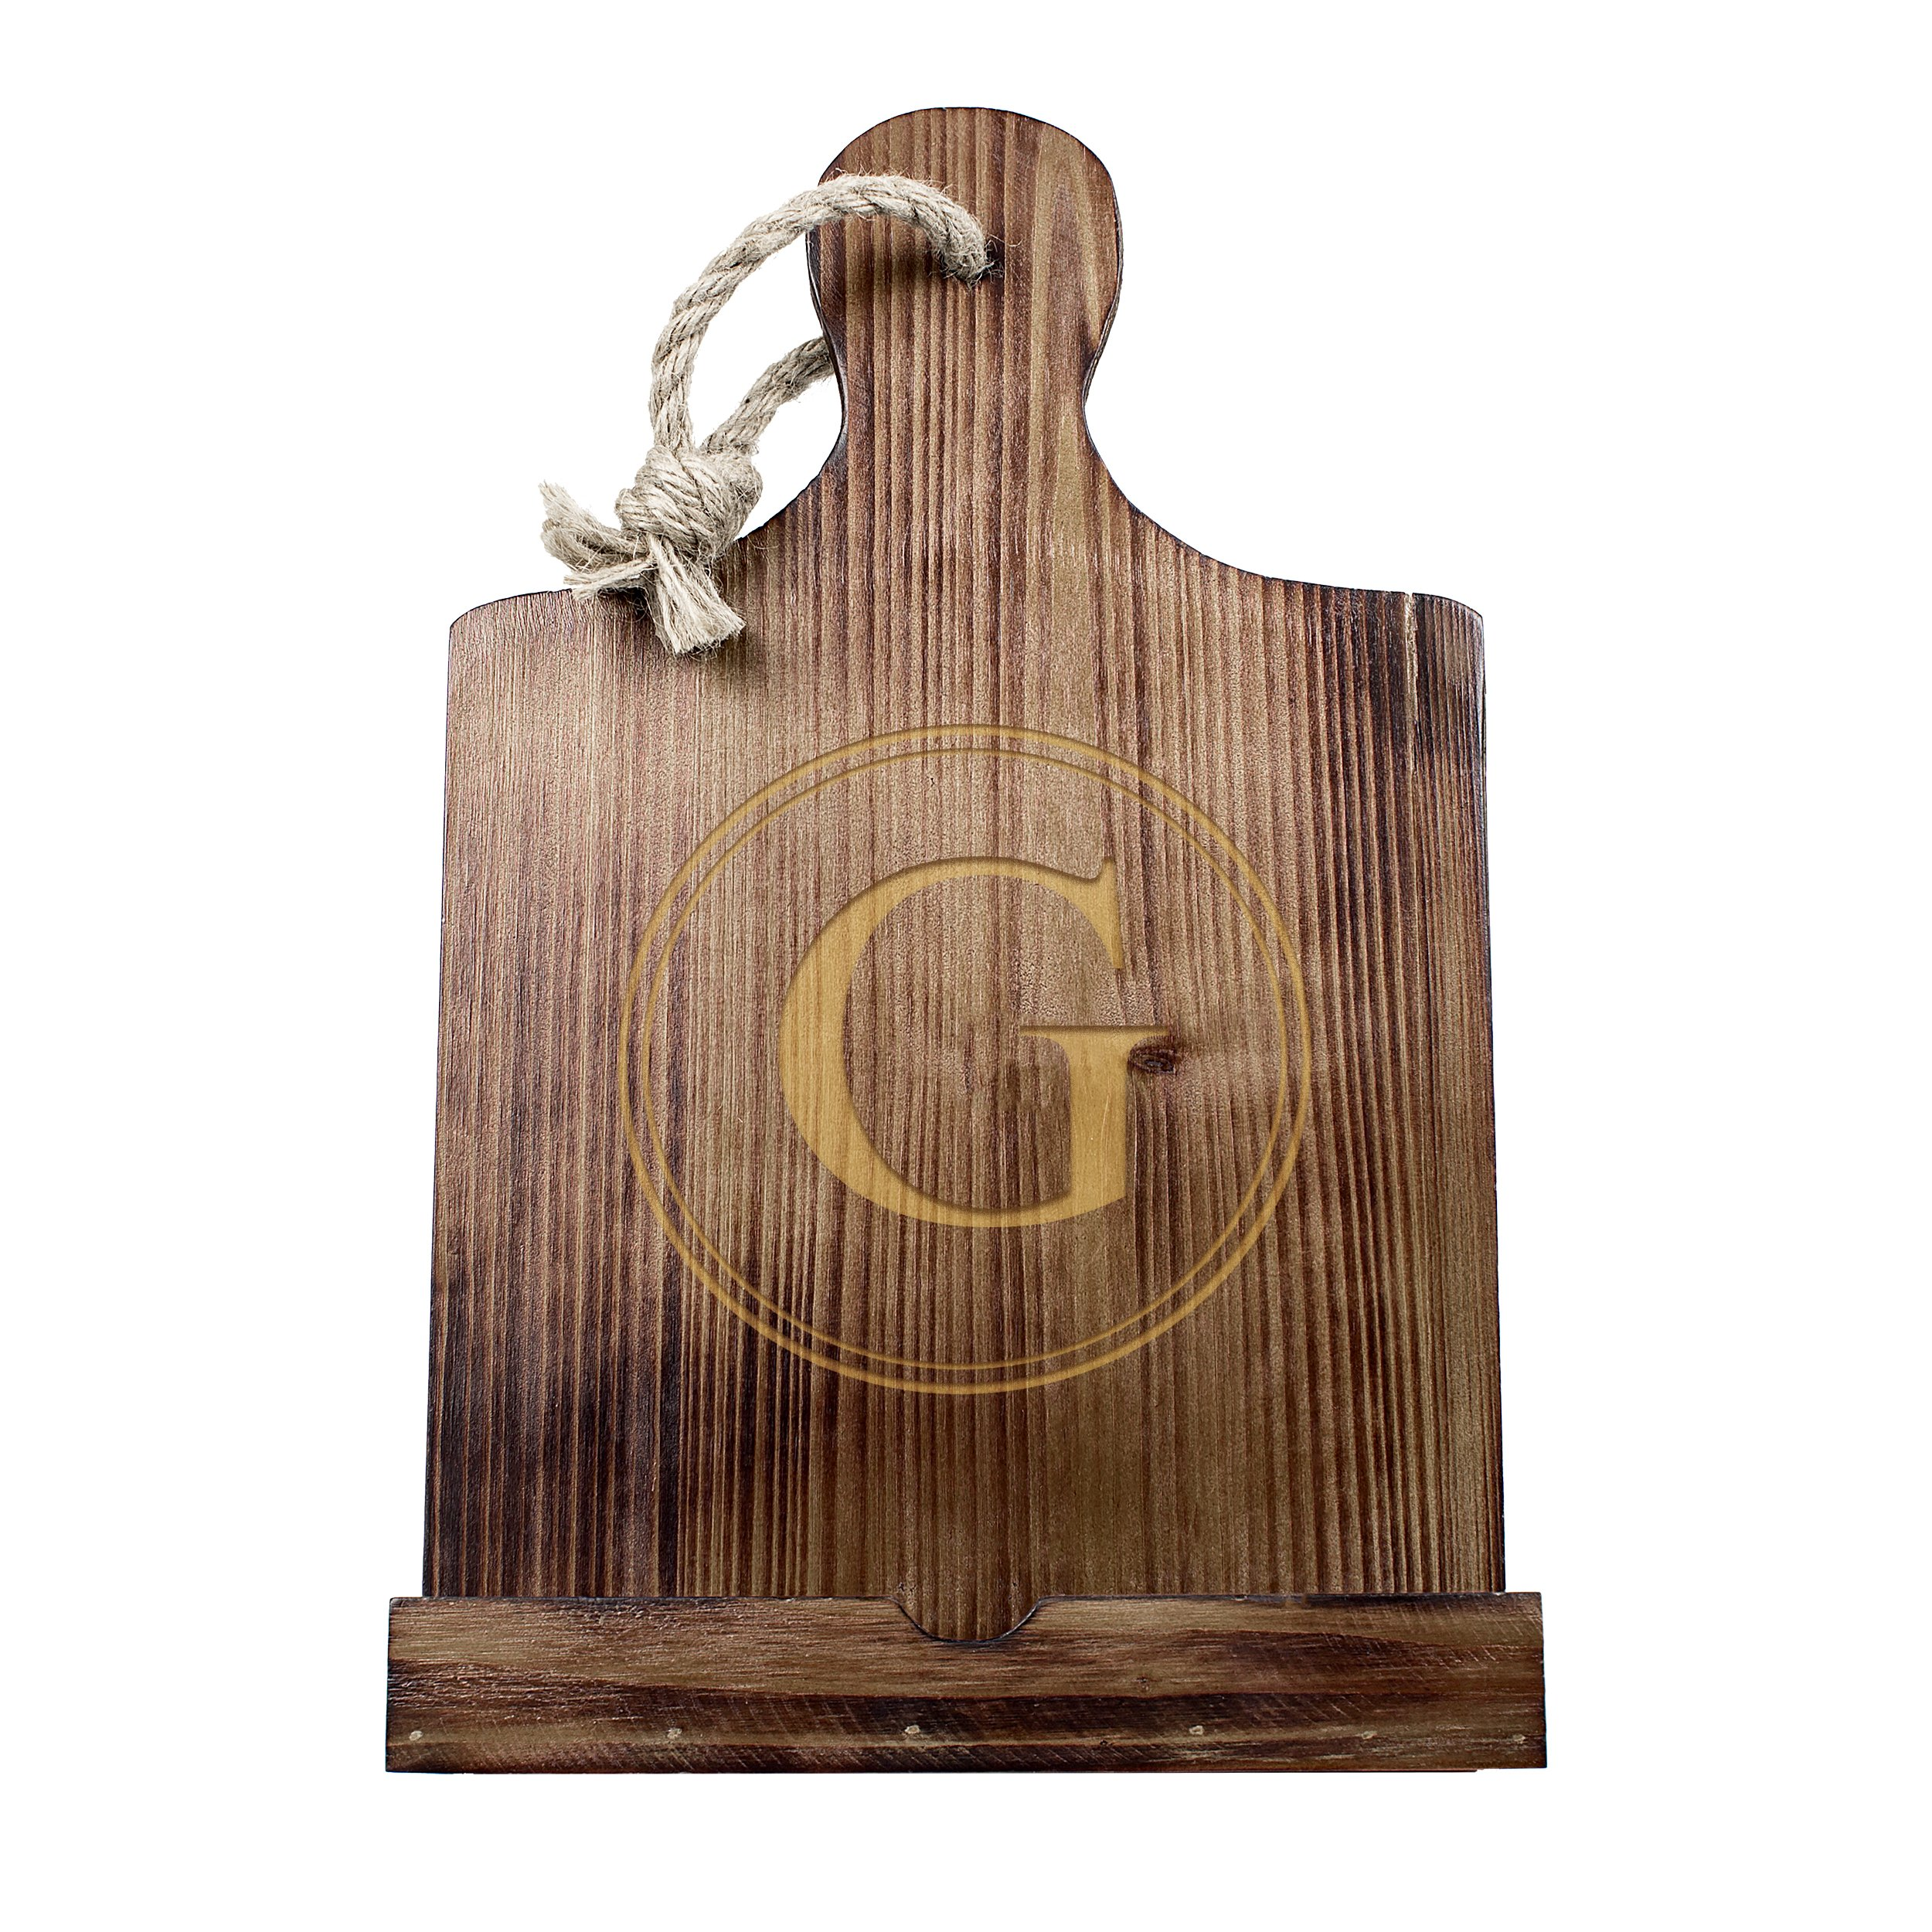 Cathy's Concepts Personalized Wooden iPad & Recipe Stand, Brown, Letter G by Cathy's Concepts